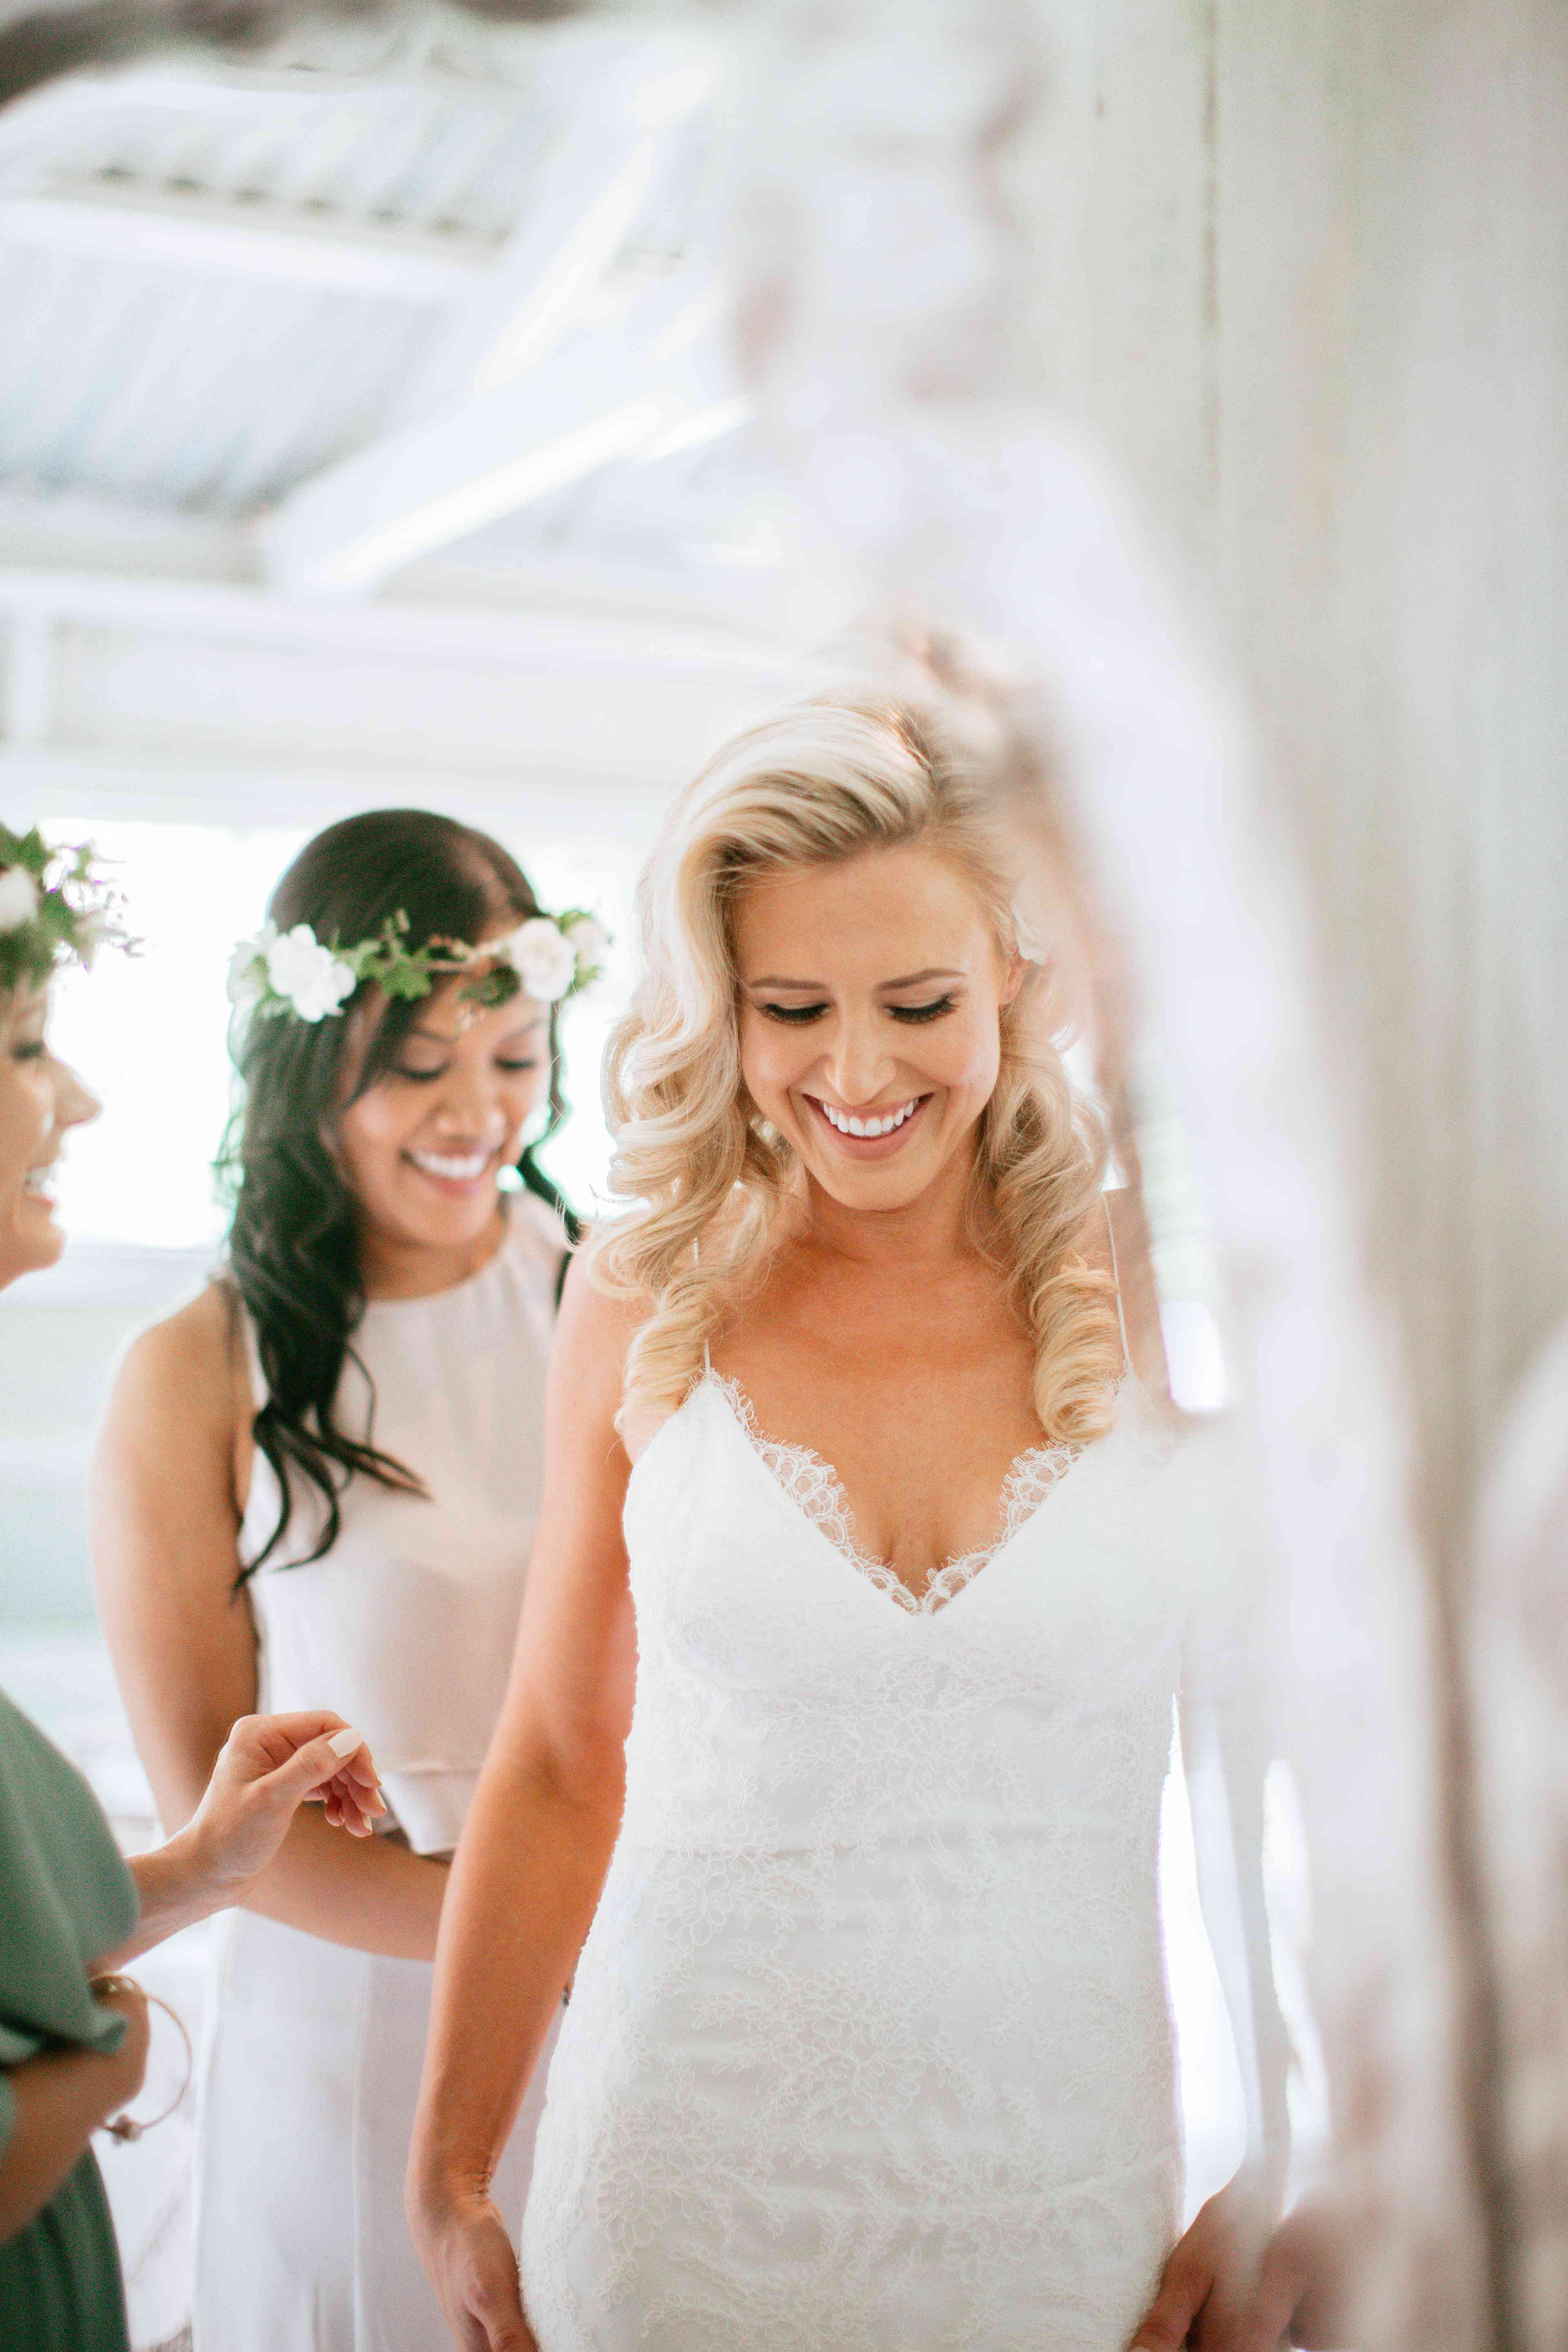 Bride in mirror getting ready with bridesmaids